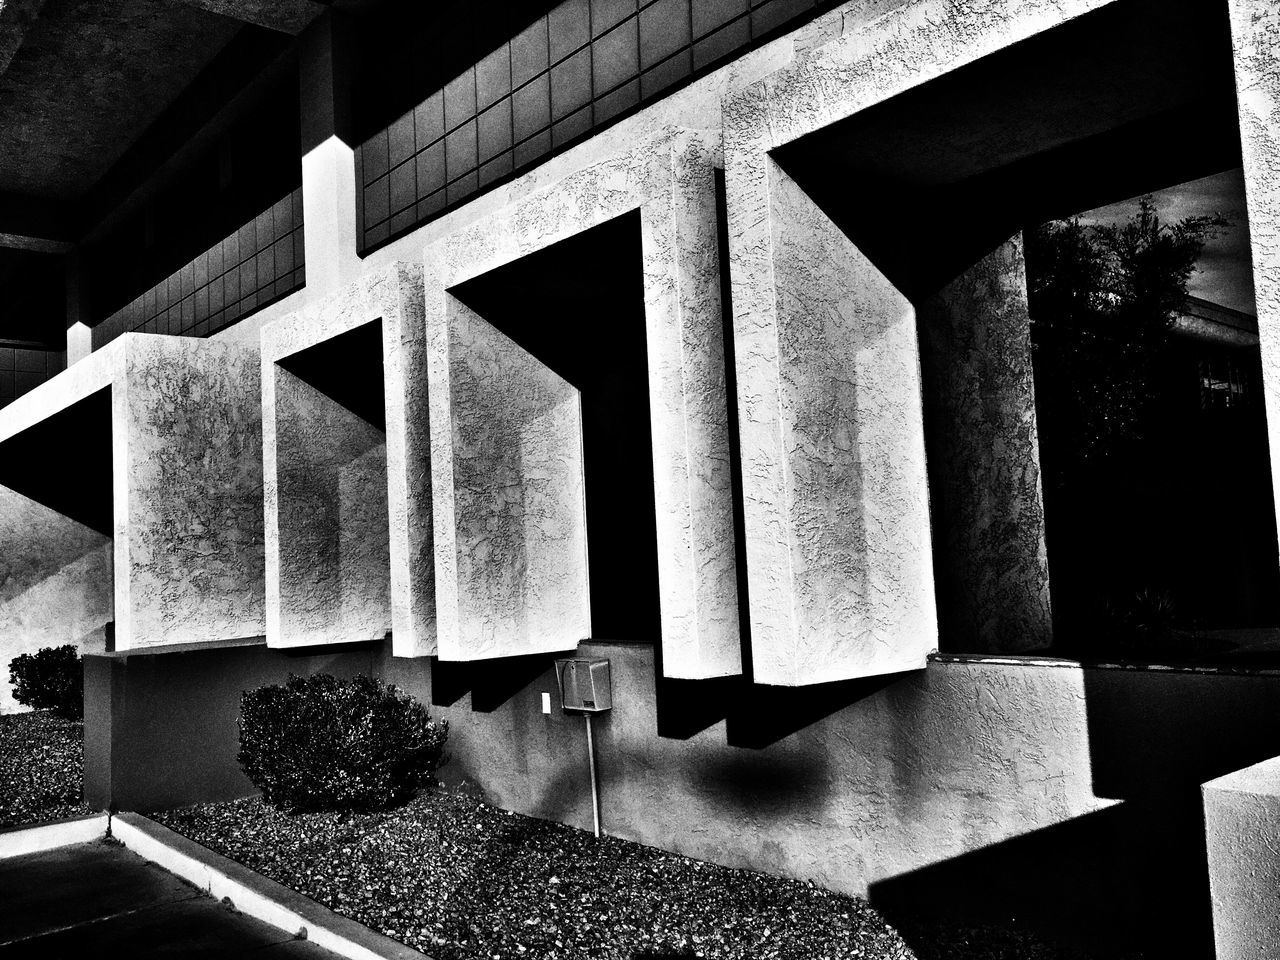 Windows Built Structure No People Close-up Architecture Backgrounds Day Phoenix, AZ Popular Photos EyeEm Best Shots EyeEm Gallery Alleyezonmayphotography Outdoors Check This Out Black And White Photography Textured